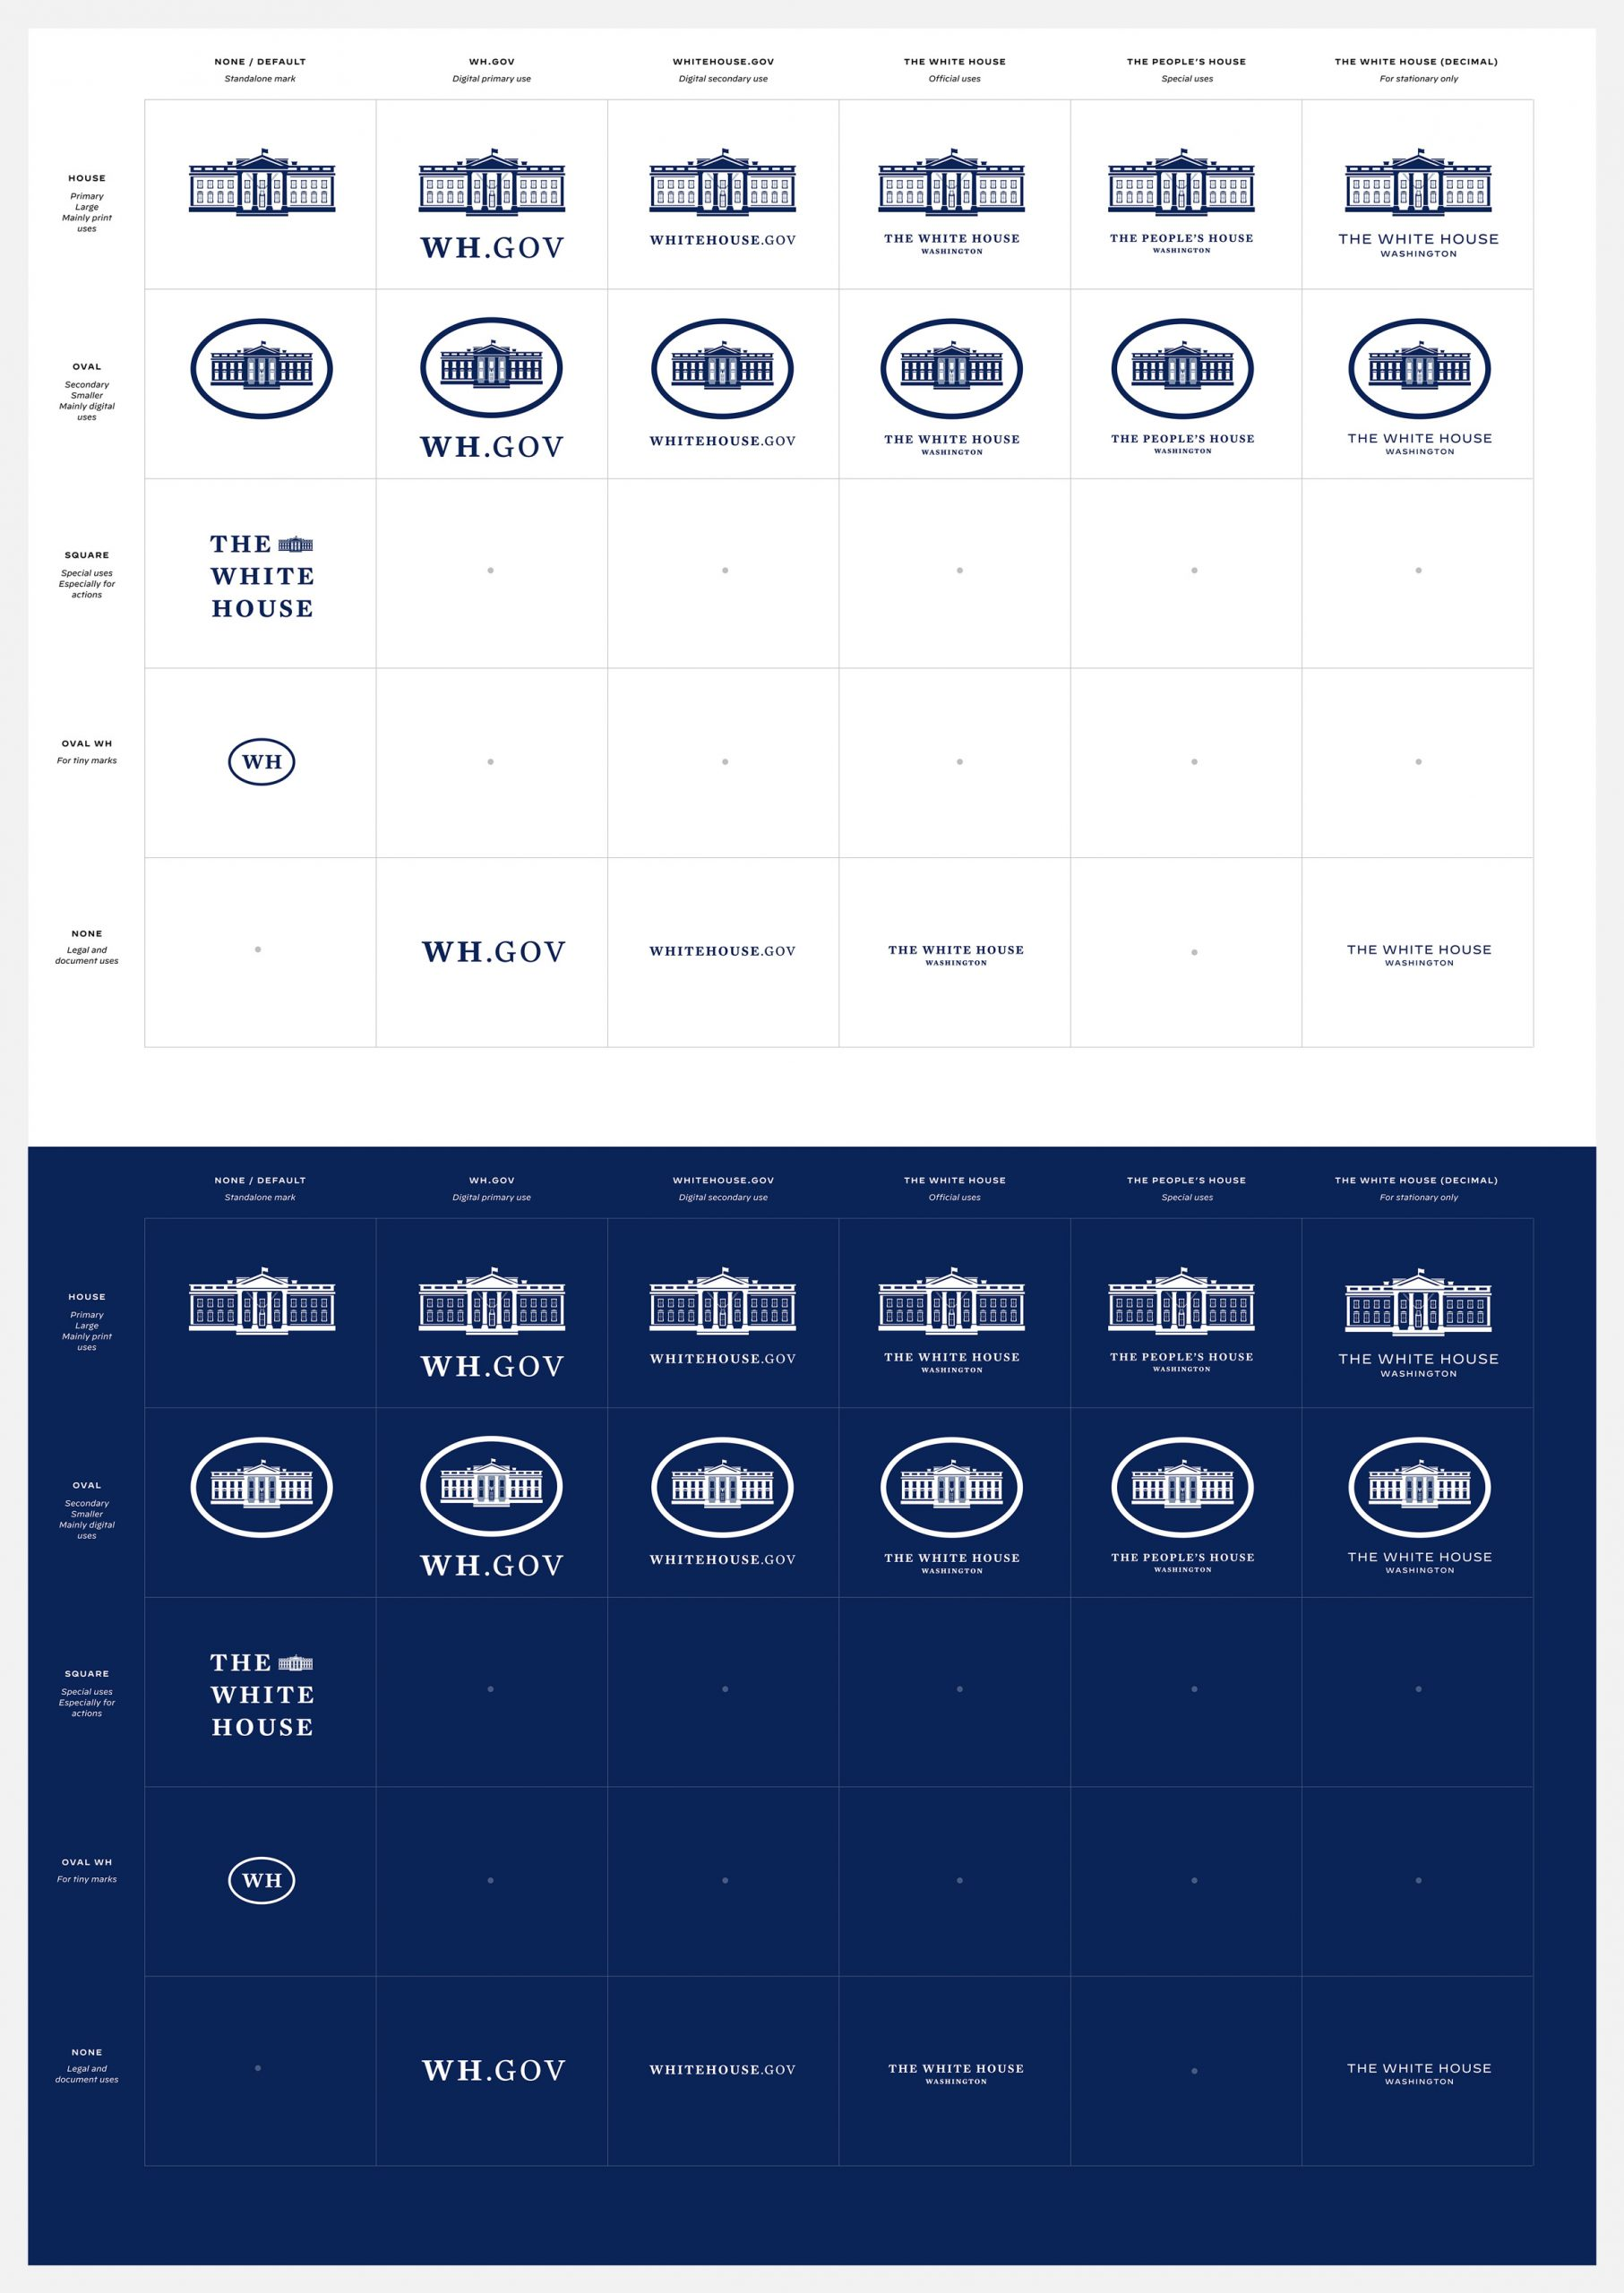 Chart of different versions of the White House logo